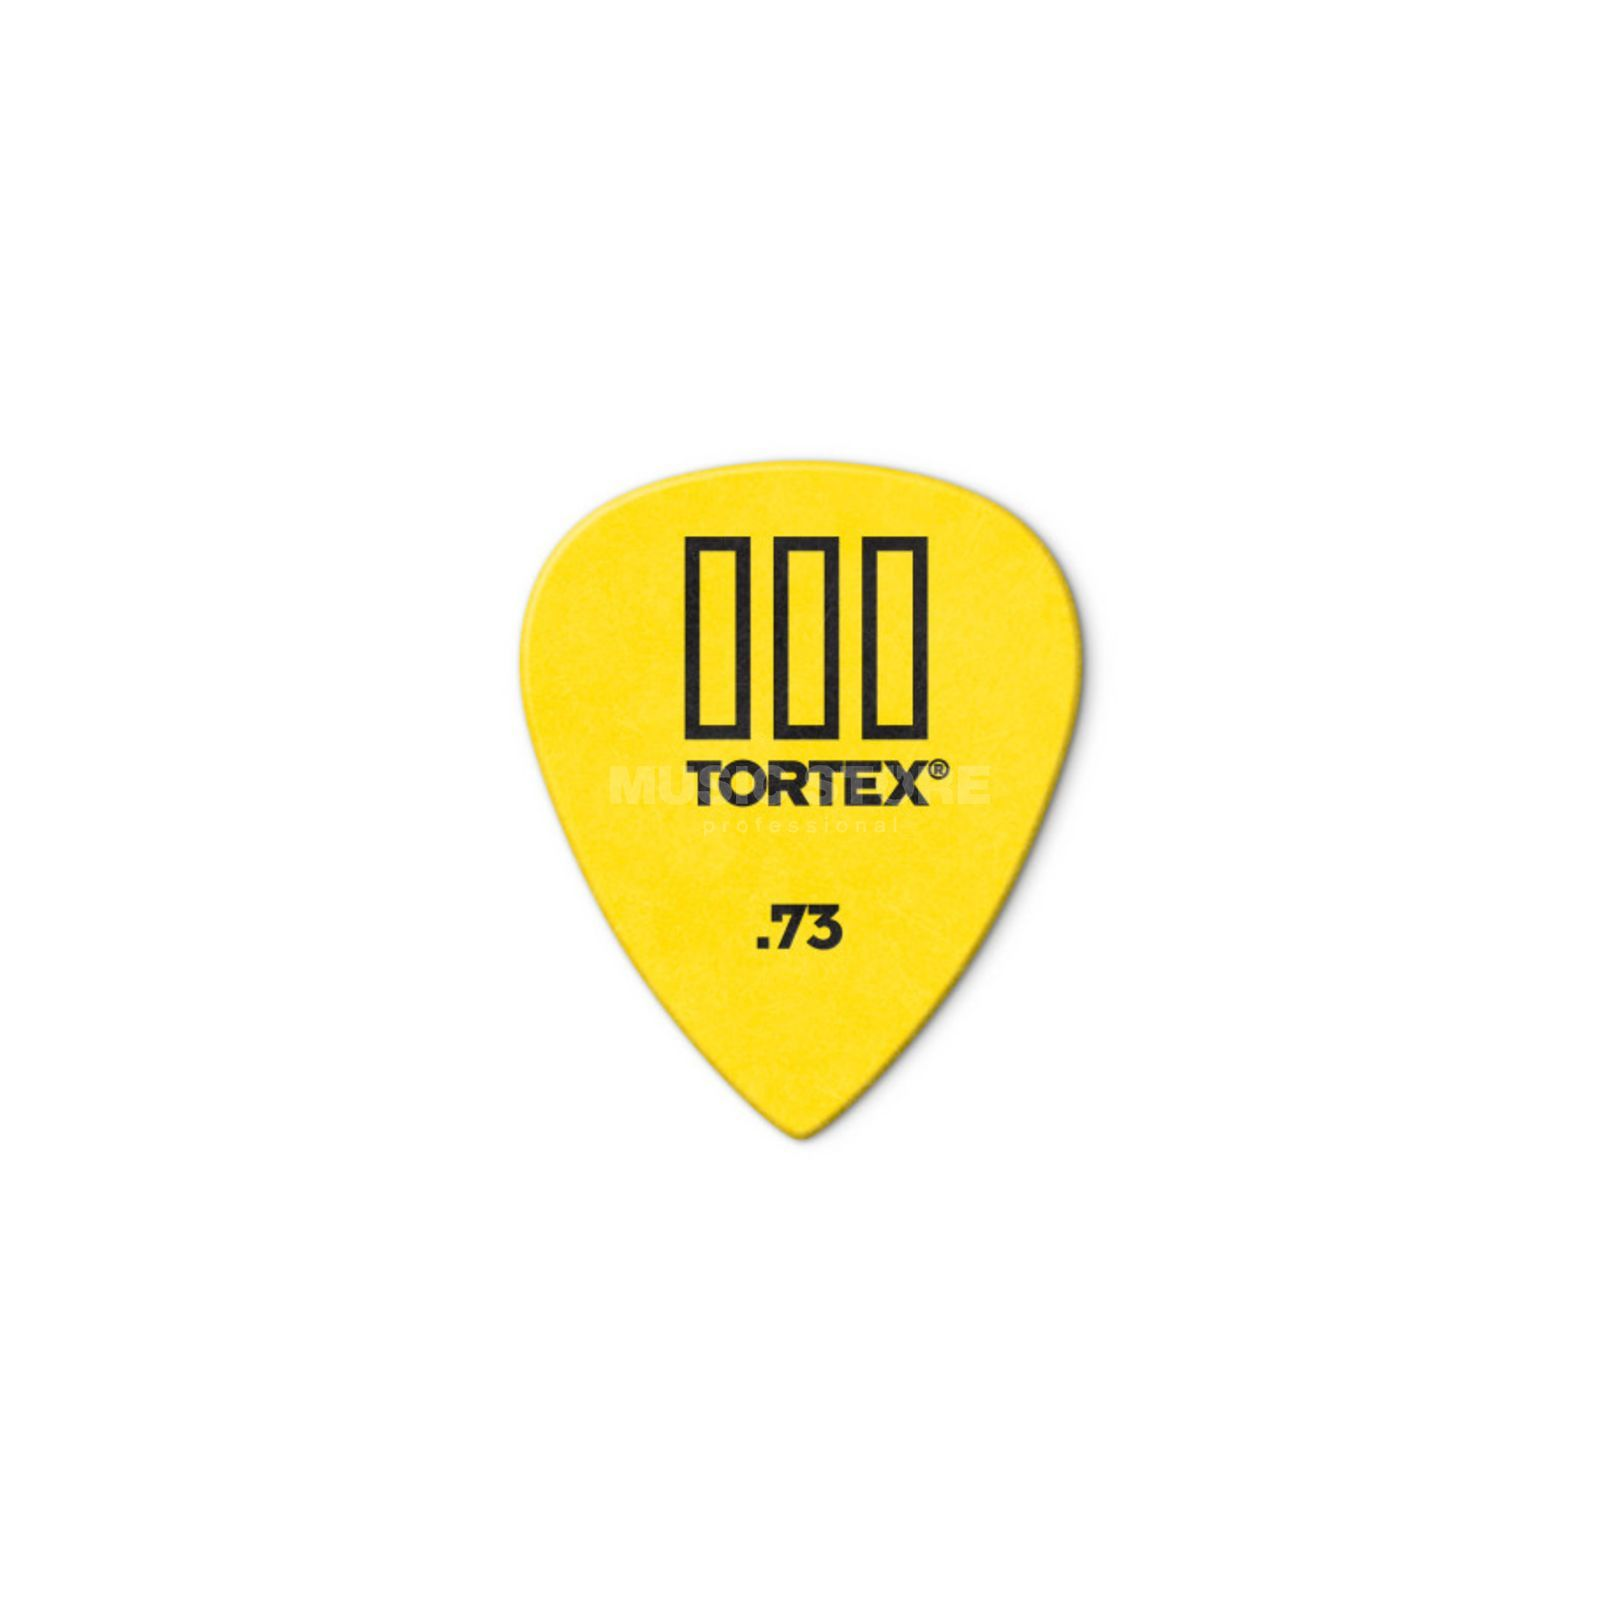 Dunlop Tortex III 462 Picks 0,73 12-Pack, yellow Produktbillede